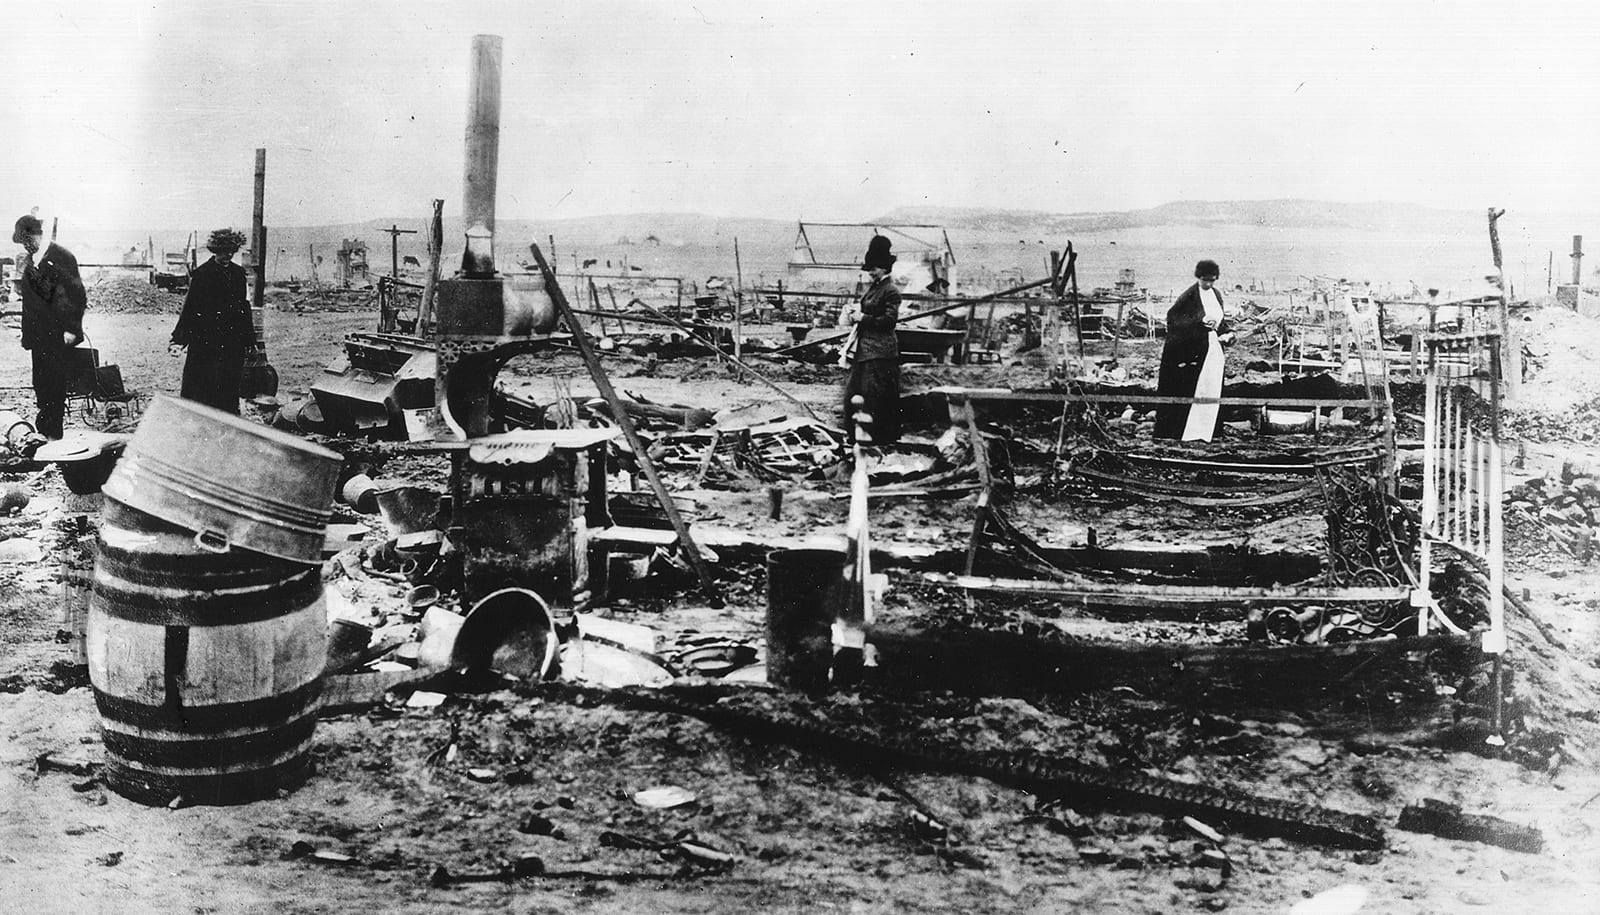 Camp Ludlow Colorado Ruins 1914 After Massacre